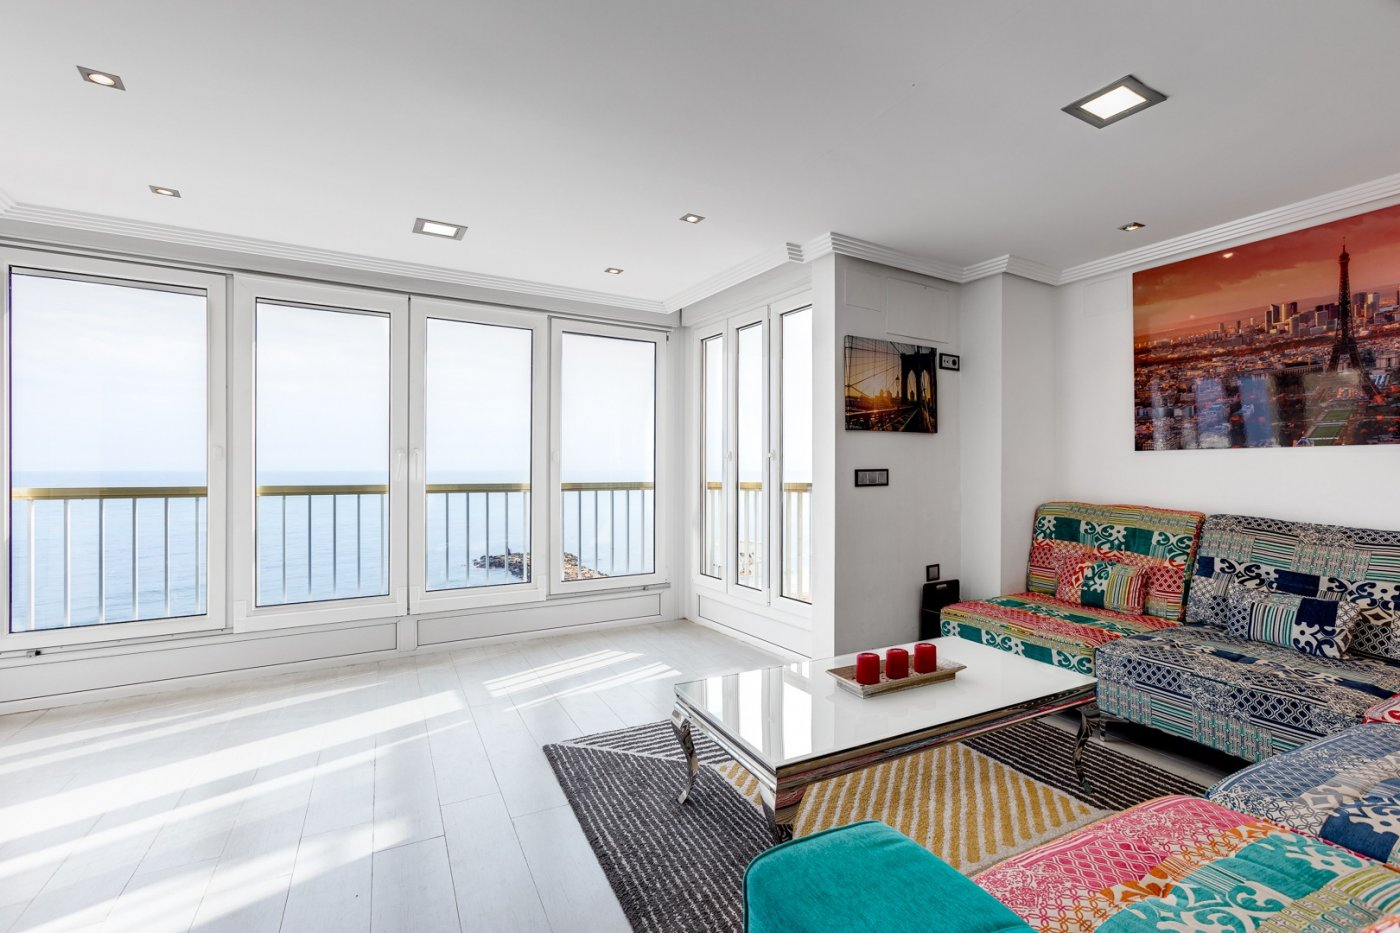 Renovated beachside apartment with panoramic sea view for sale at the Playa de los Locos beach